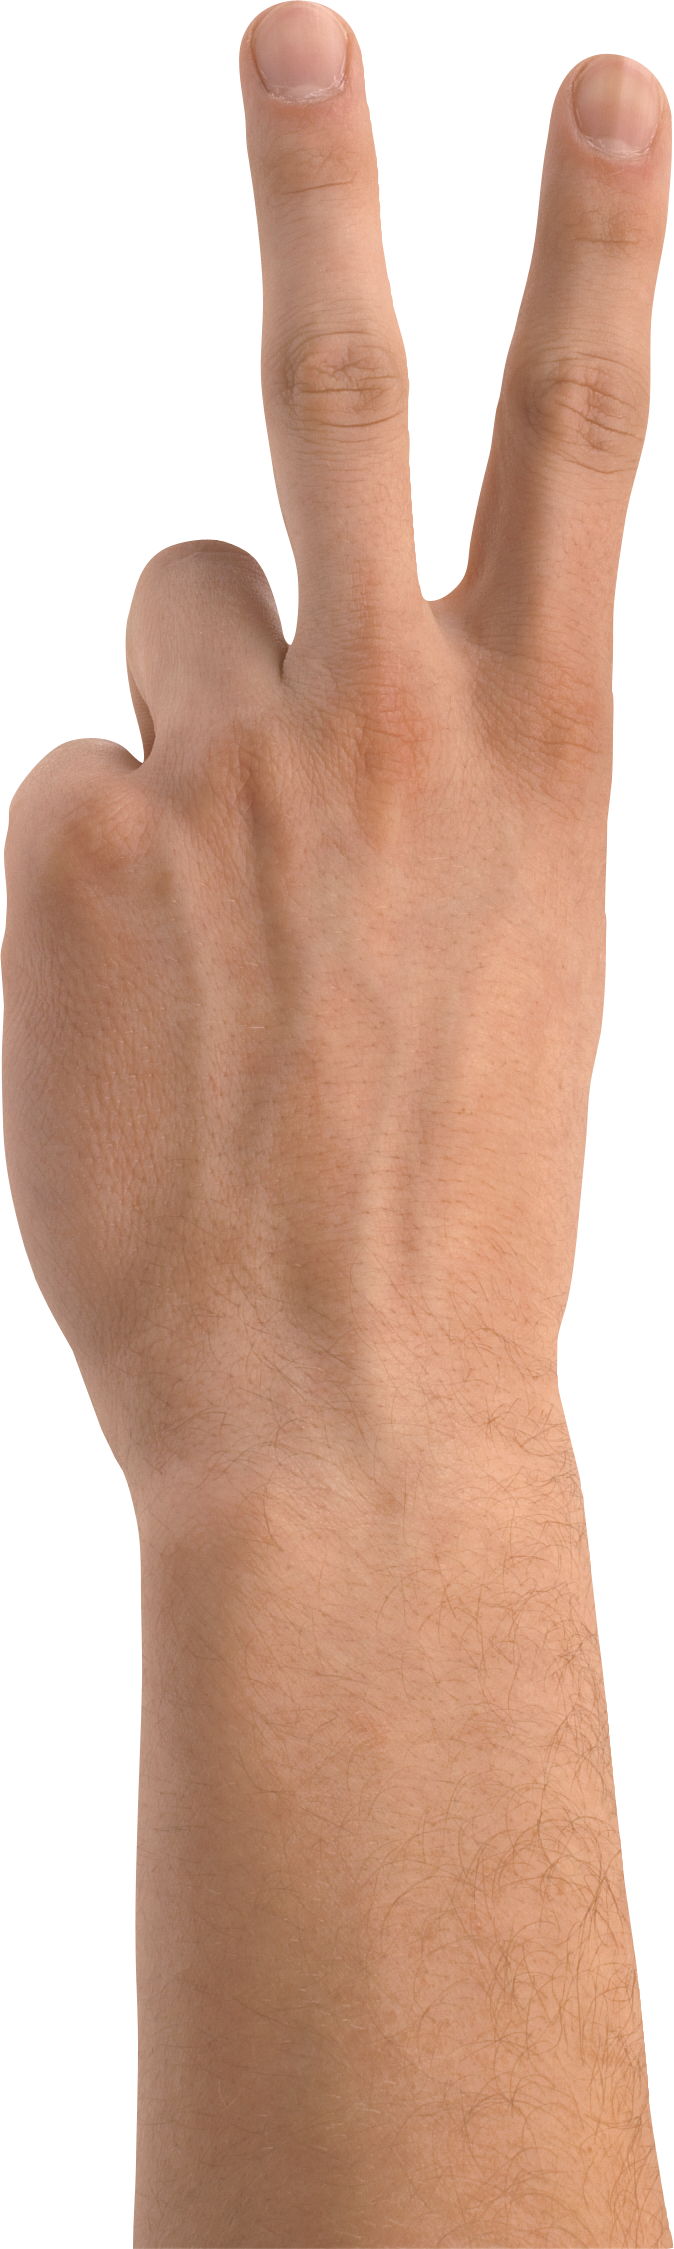 uploads hands hands PNG891 43